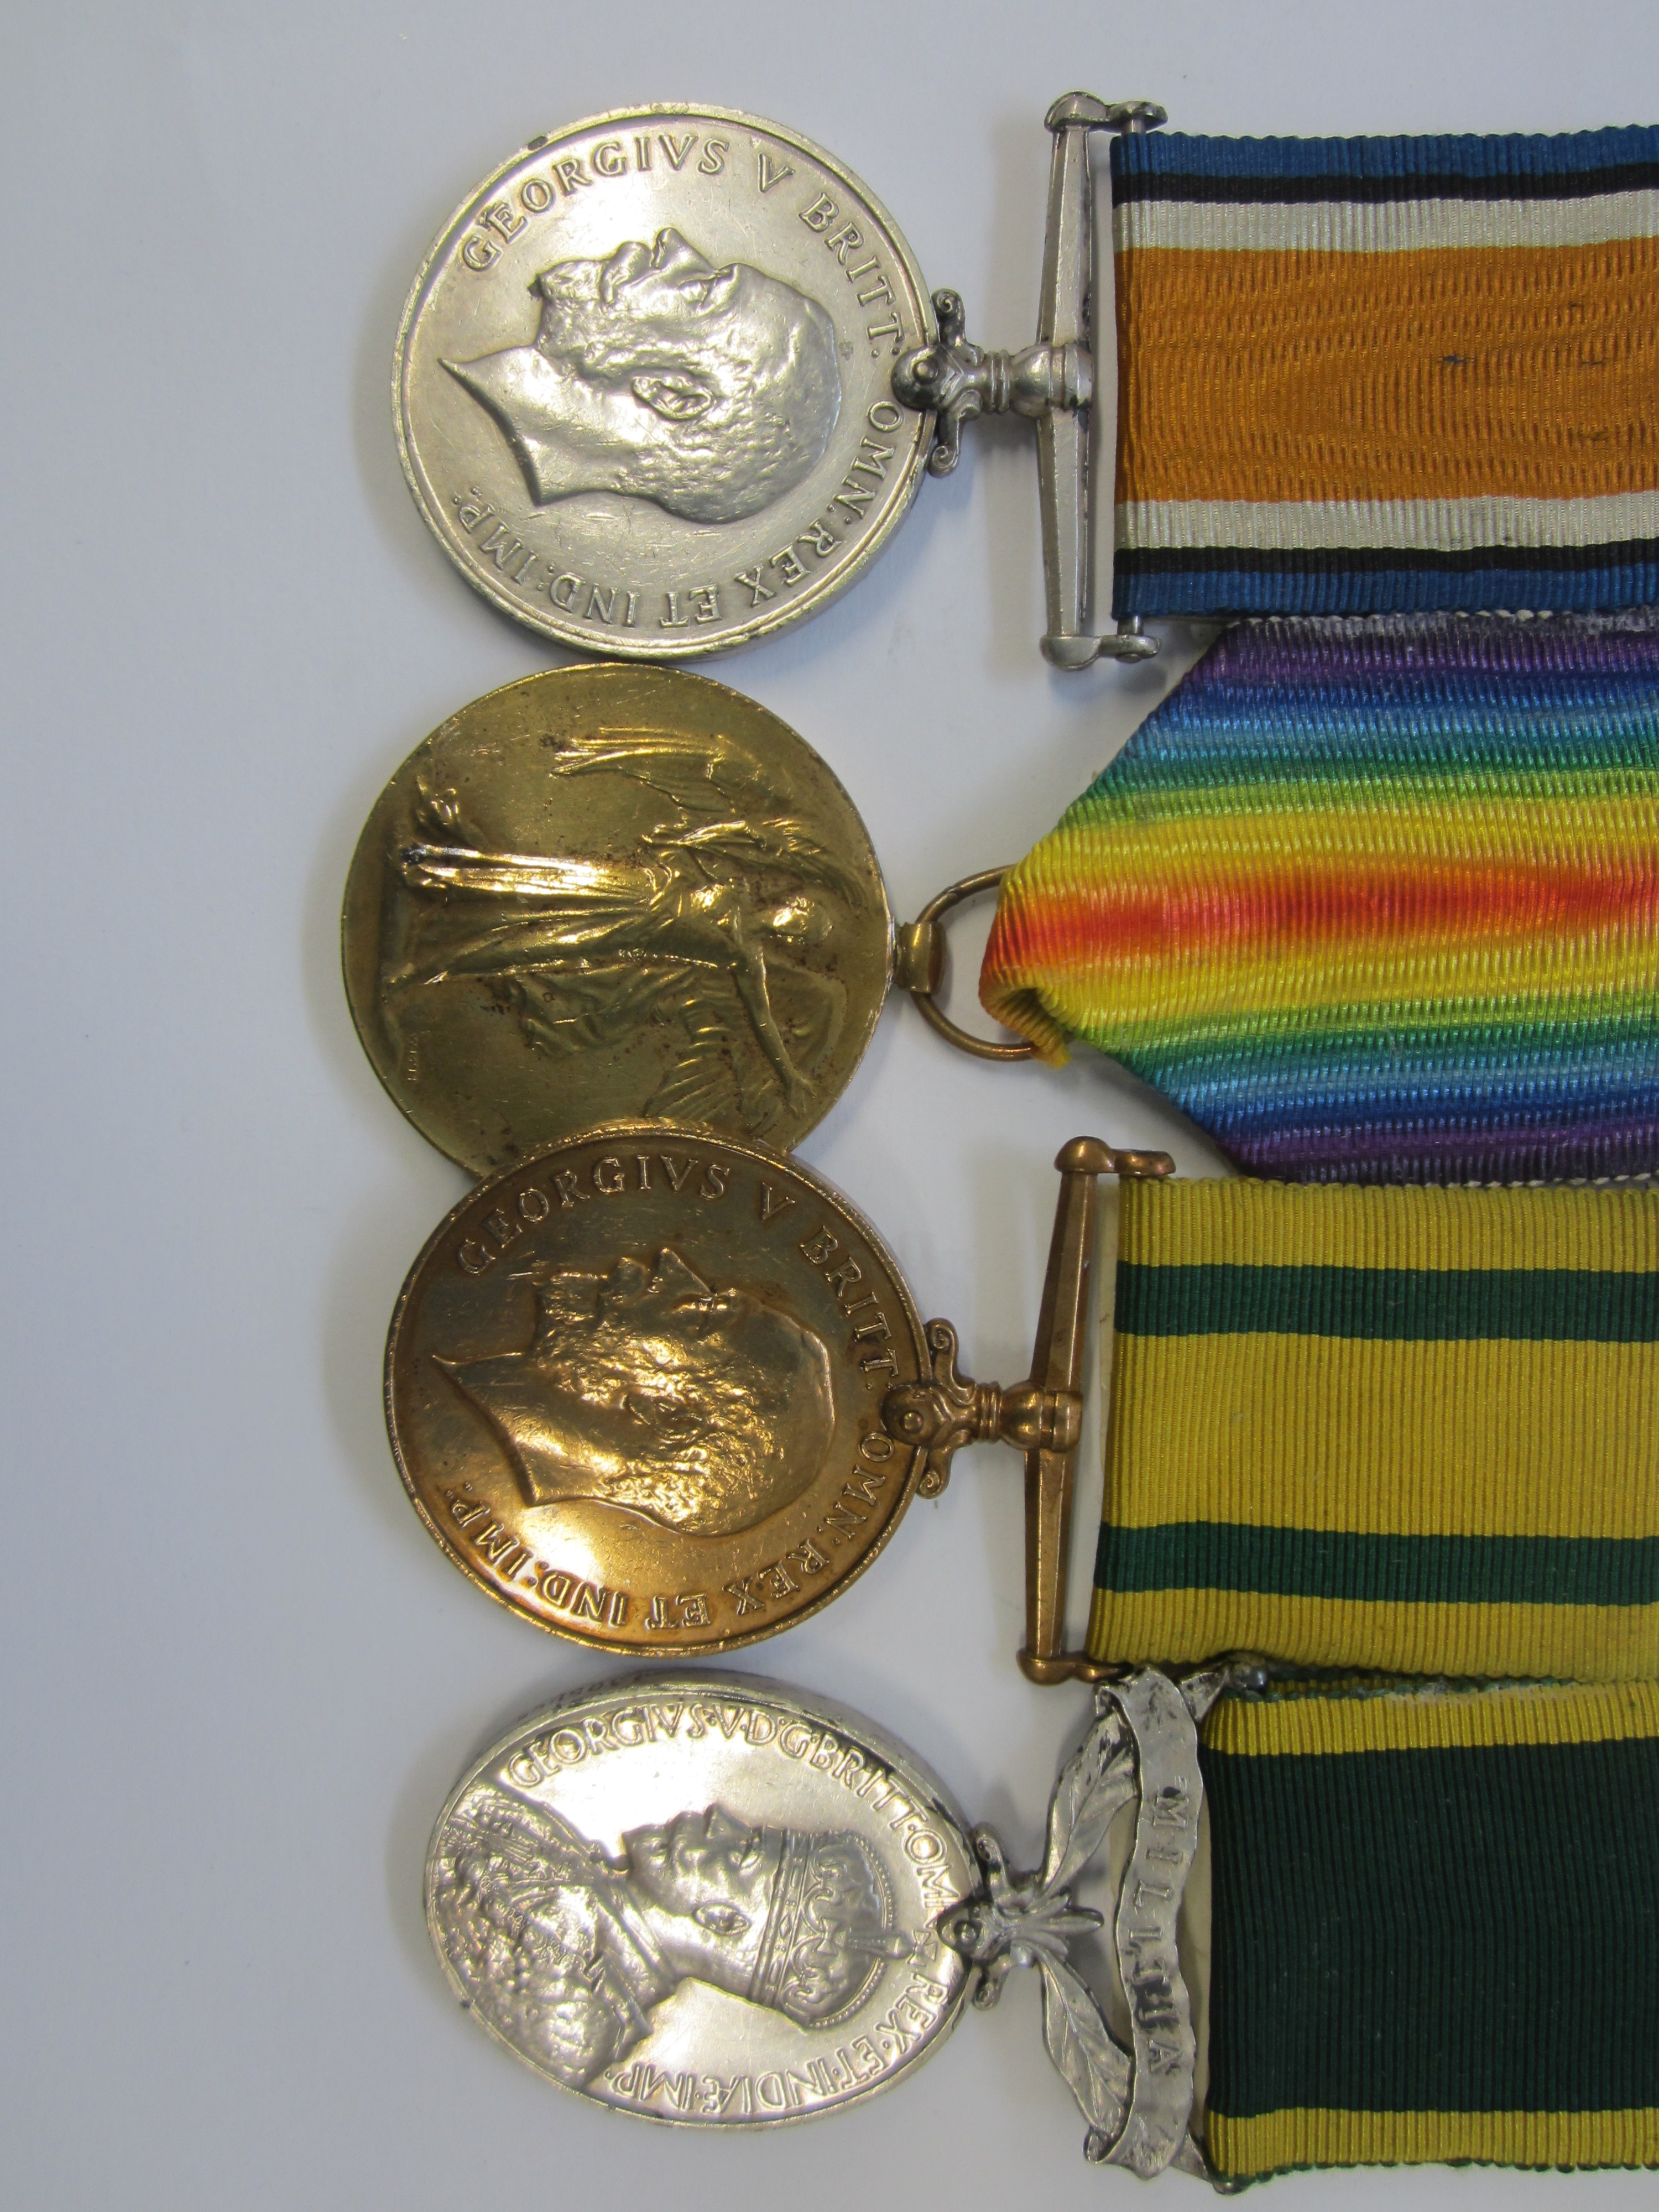 Four to Private H.C.Grieve, Royal Signals late Lincolnshire Regiment,